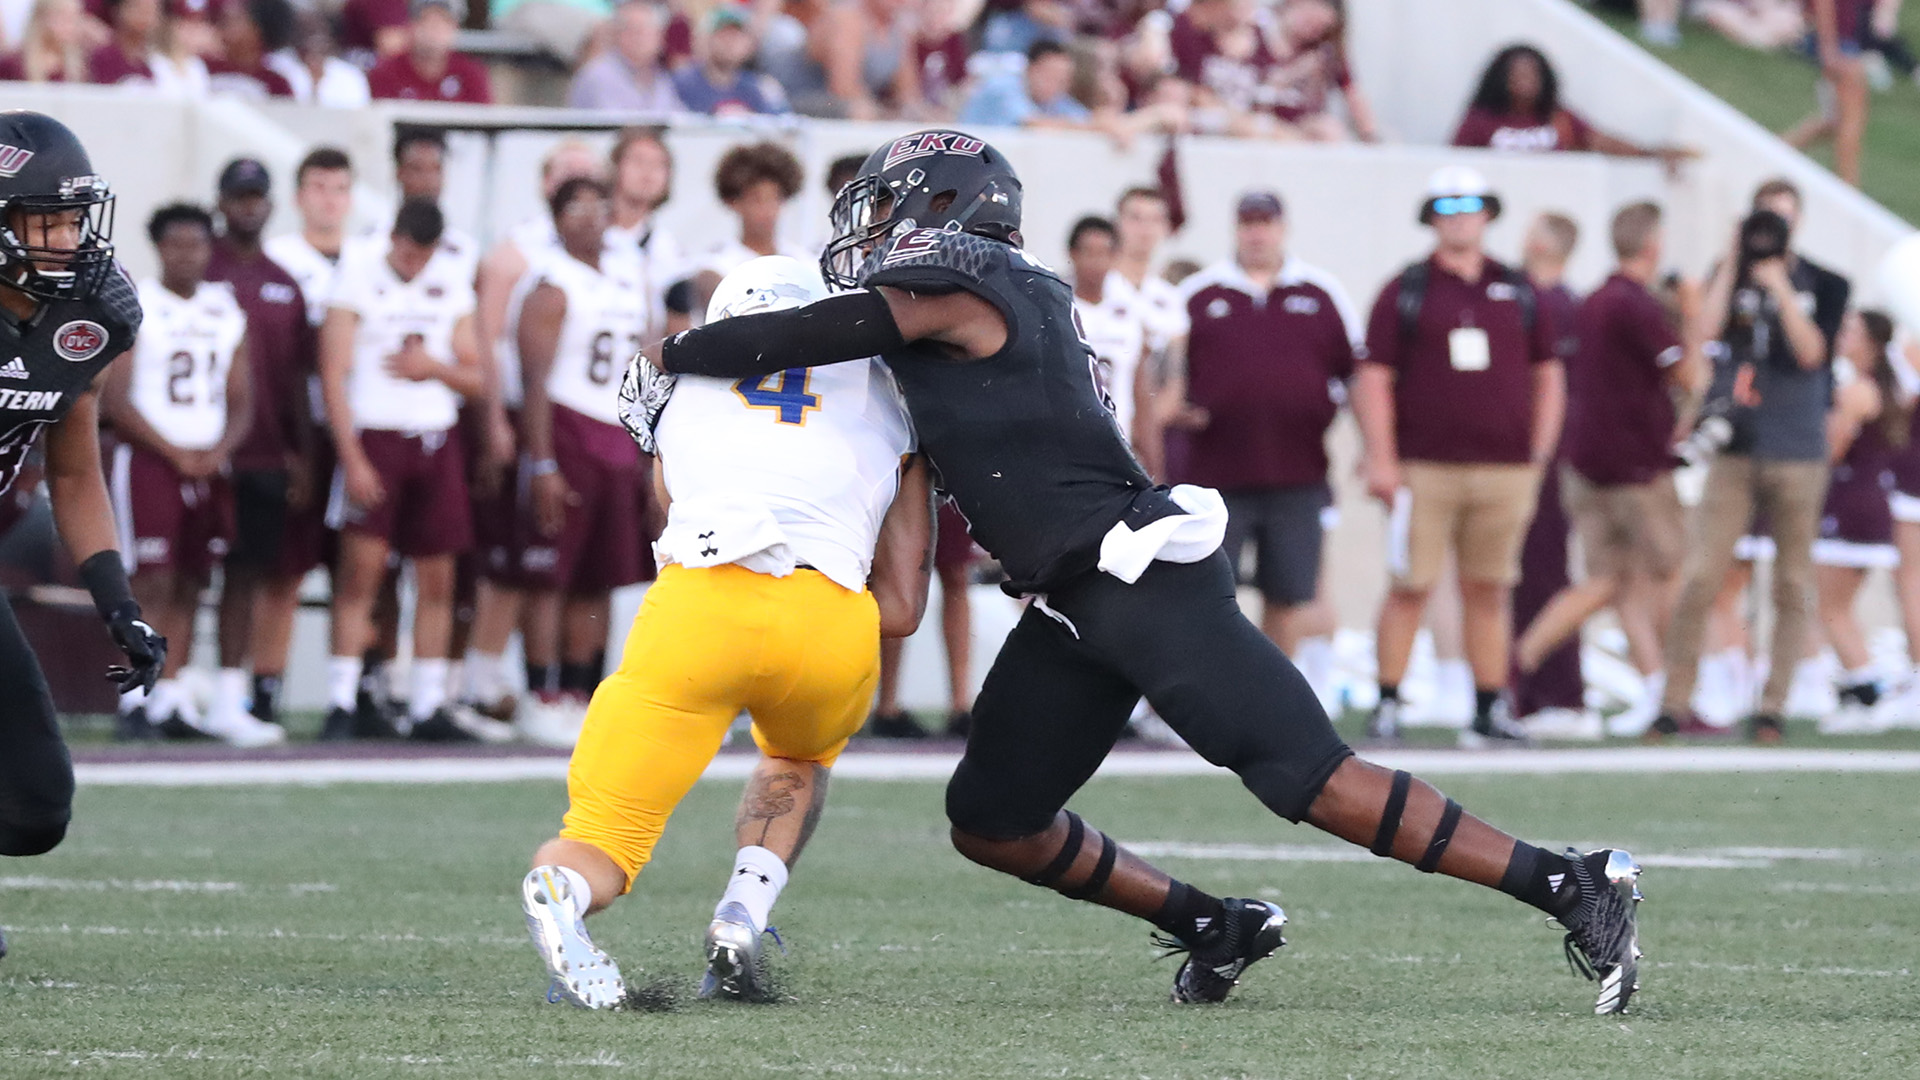 Leodis Moore III Chosen As OVC Defensive Player Of The Week